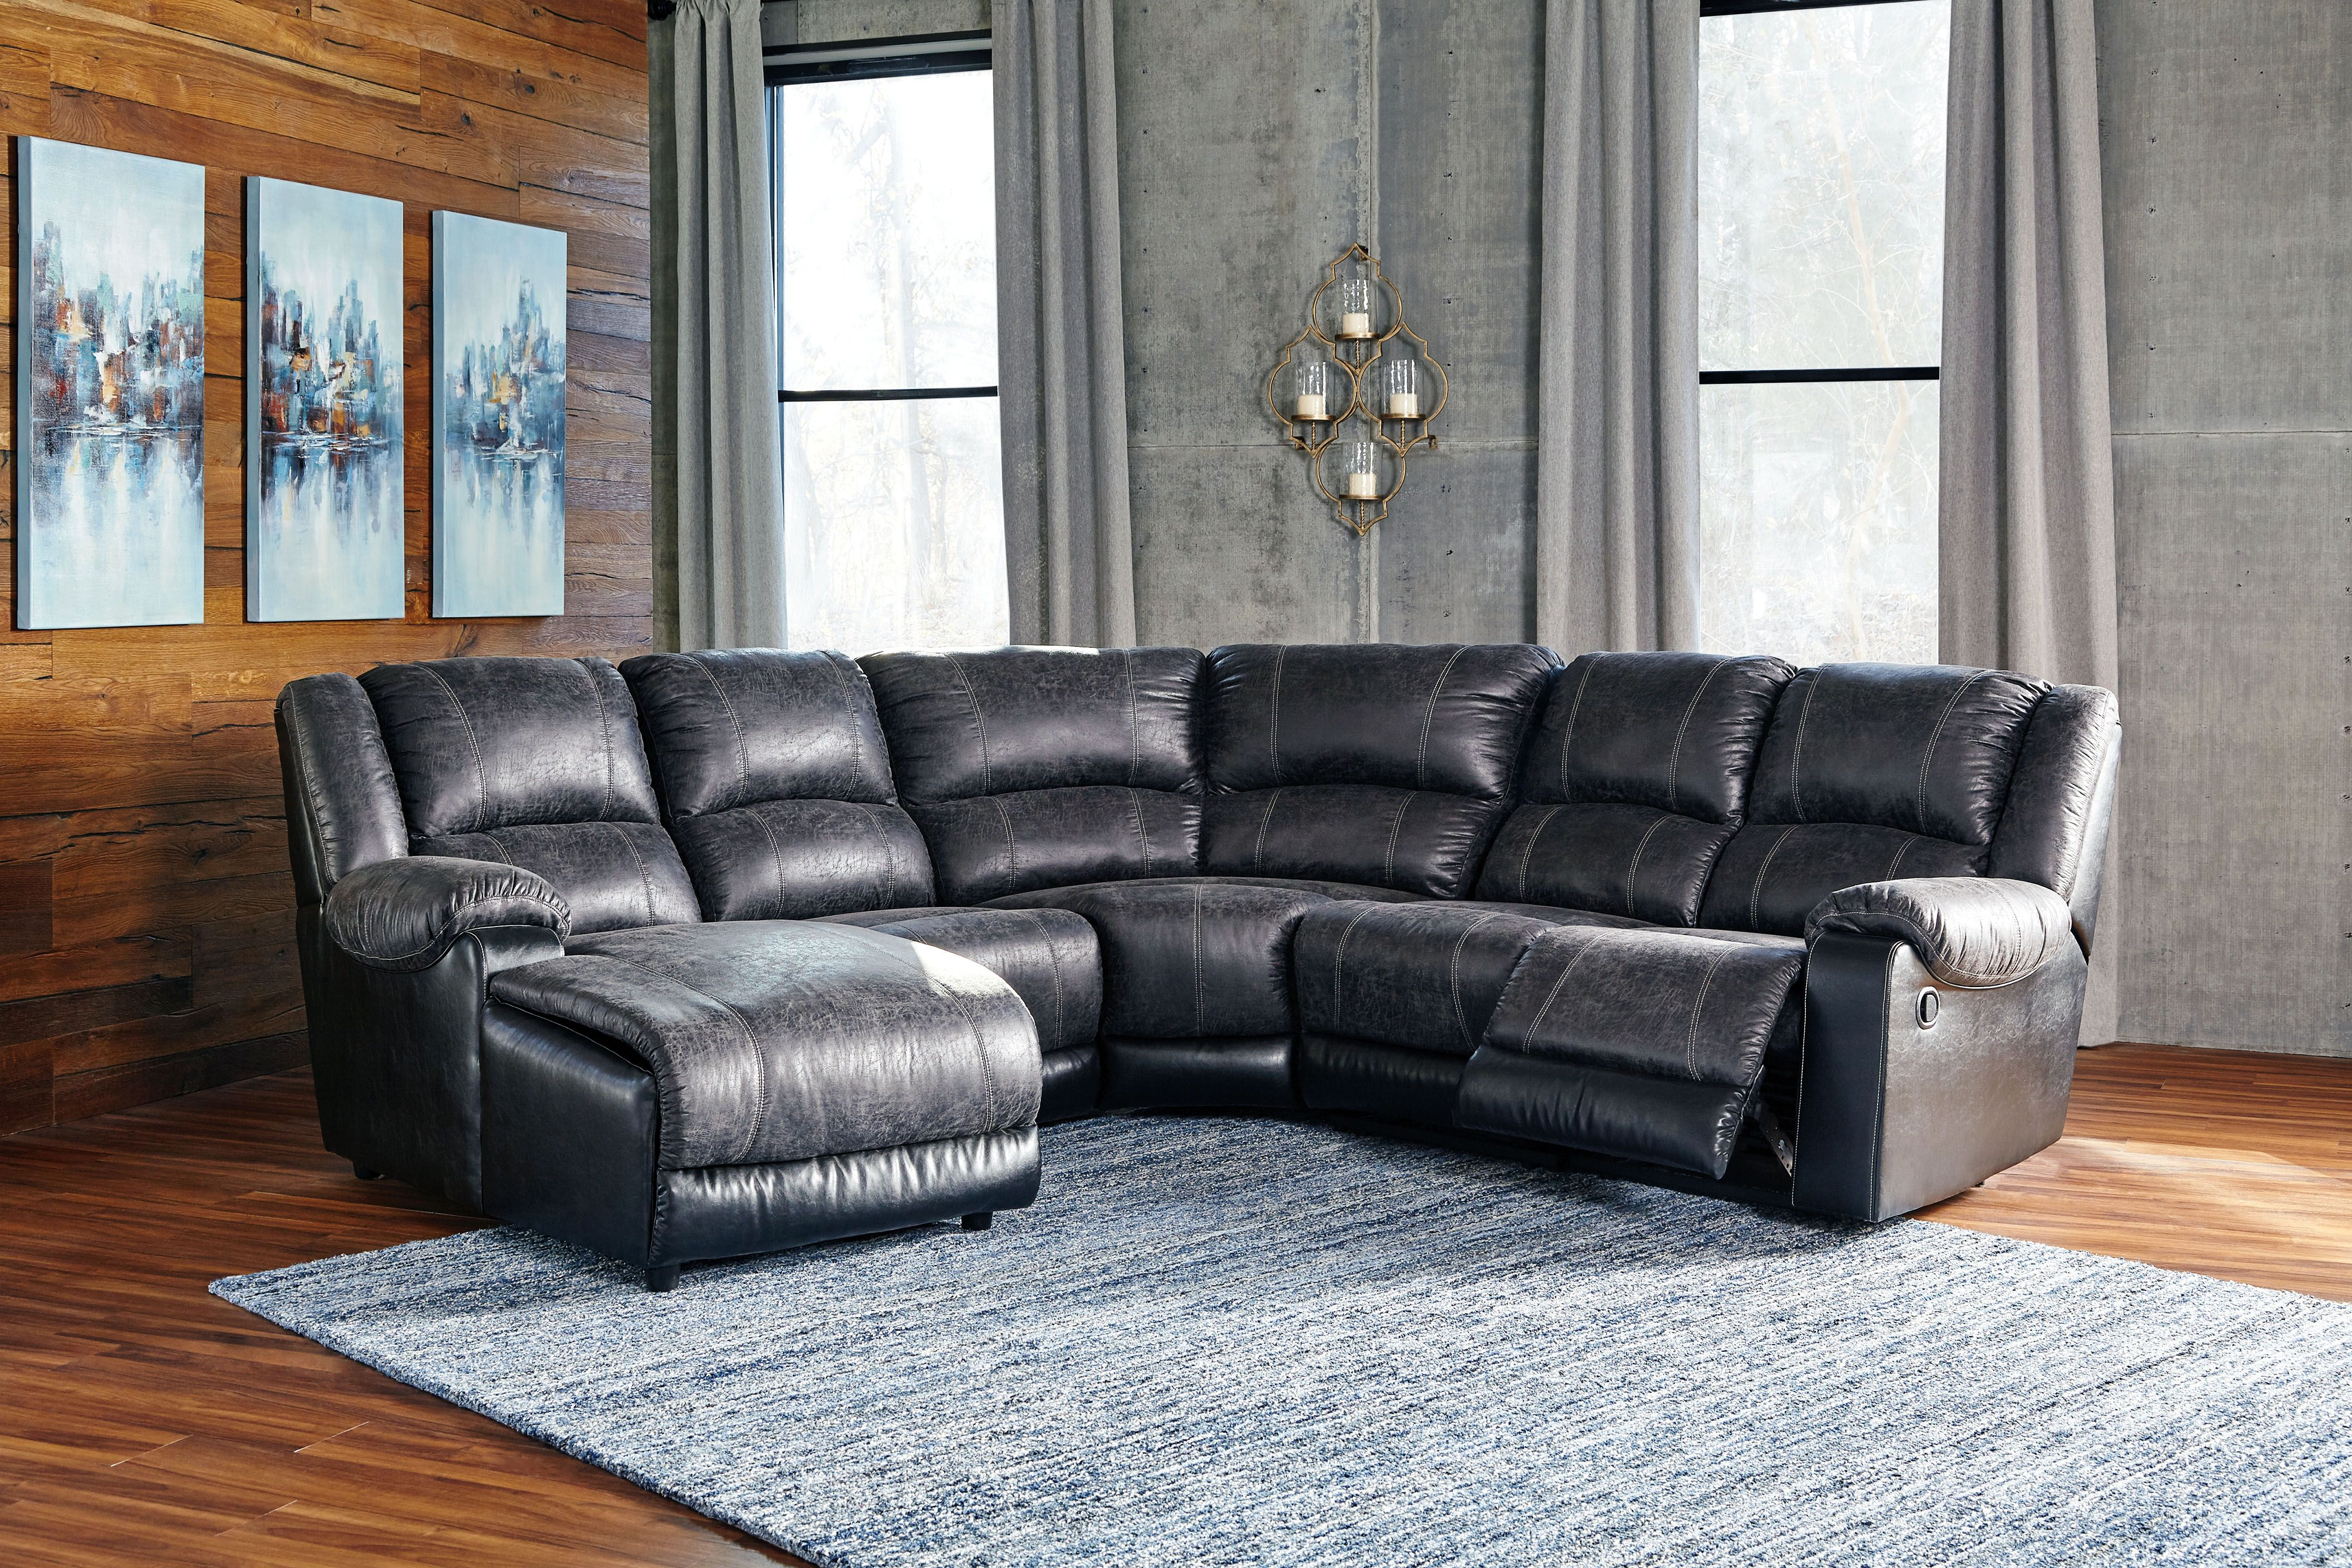 Fabulous Neutral Sectional Couches Cheap Used On This Favorite Site Beatyapartments Chair Design Images Beatyapartmentscom